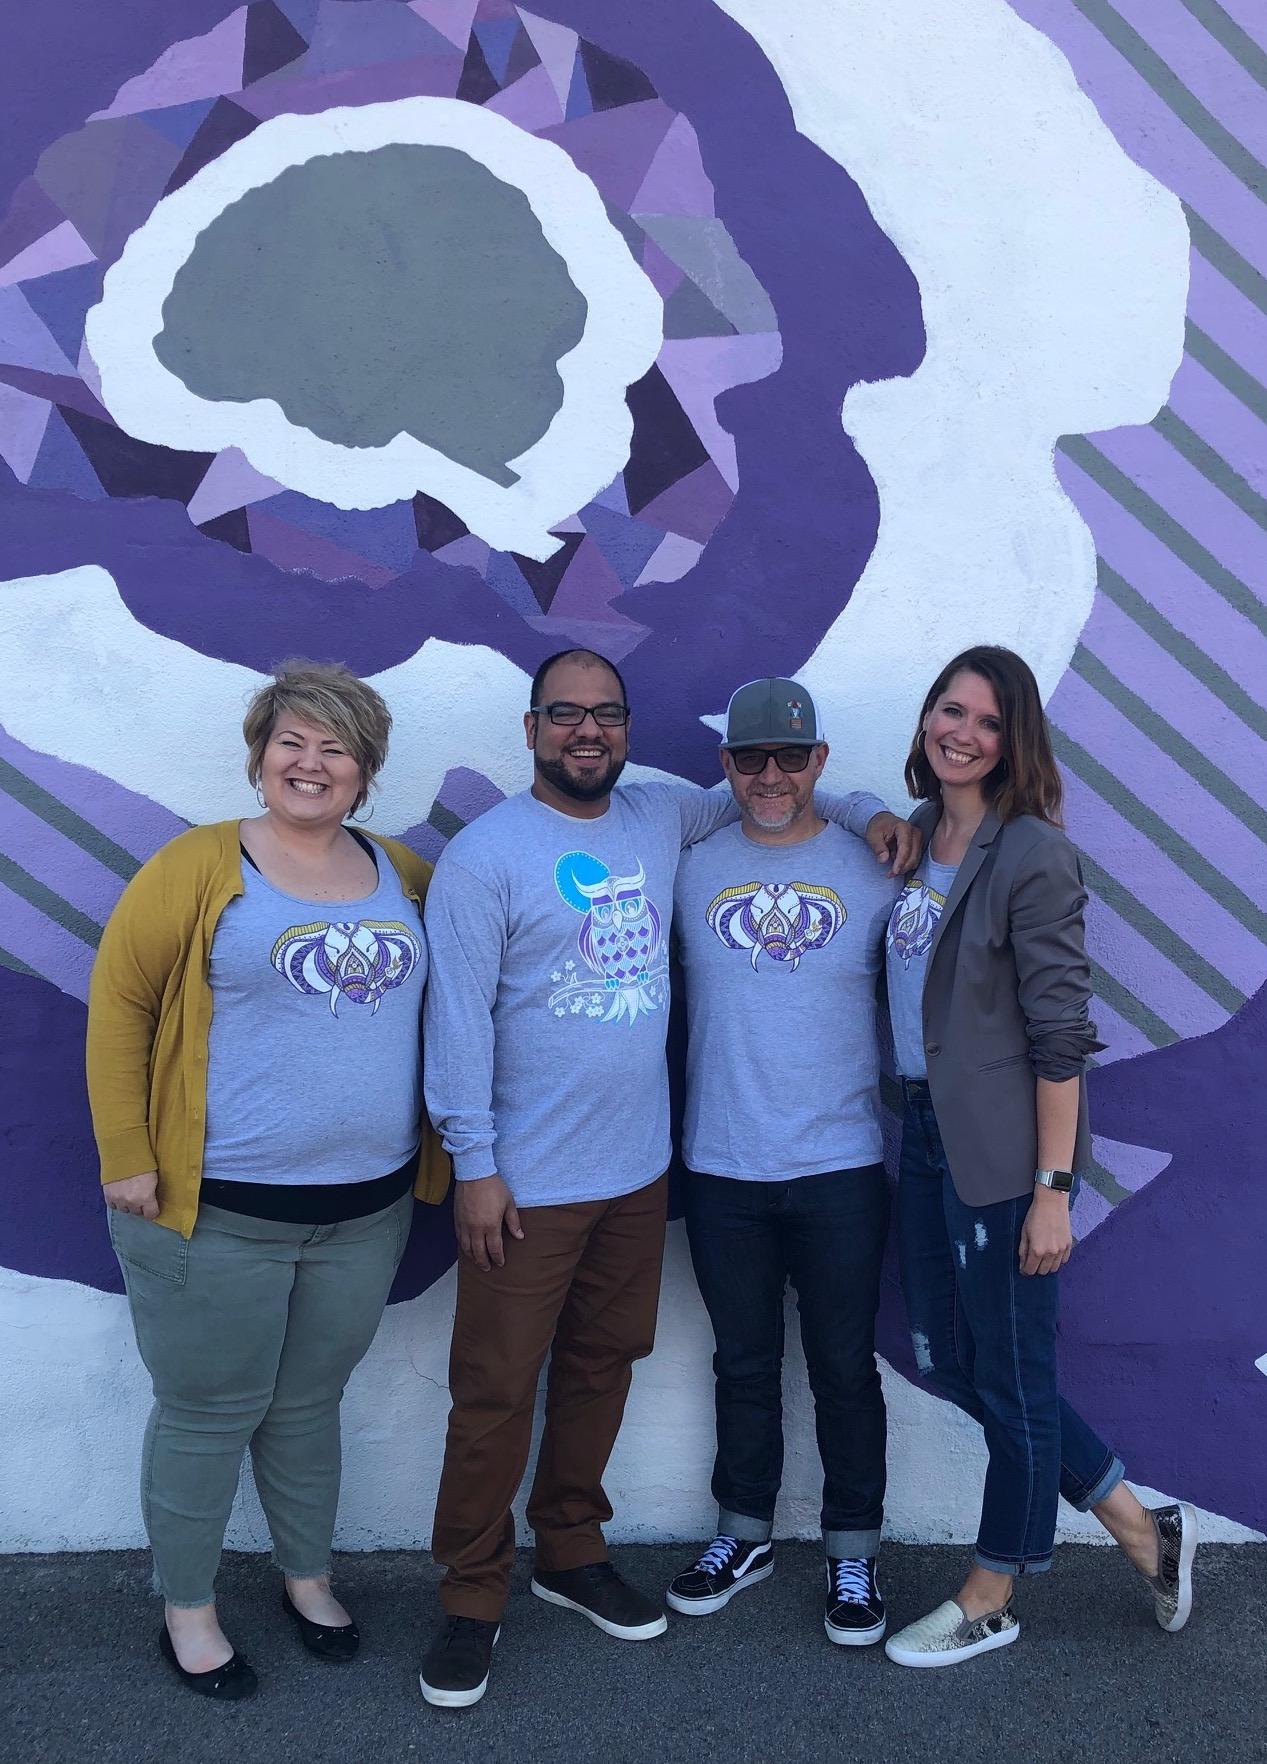 The DDD Podcast joined Sarah McNay and Johnny Freedom for this month's podcast, recorded at the Alzheimer's Association.  Pictured are Sarah, Jason, Johnny and Renee, in front of the Brickmob mural at AA.